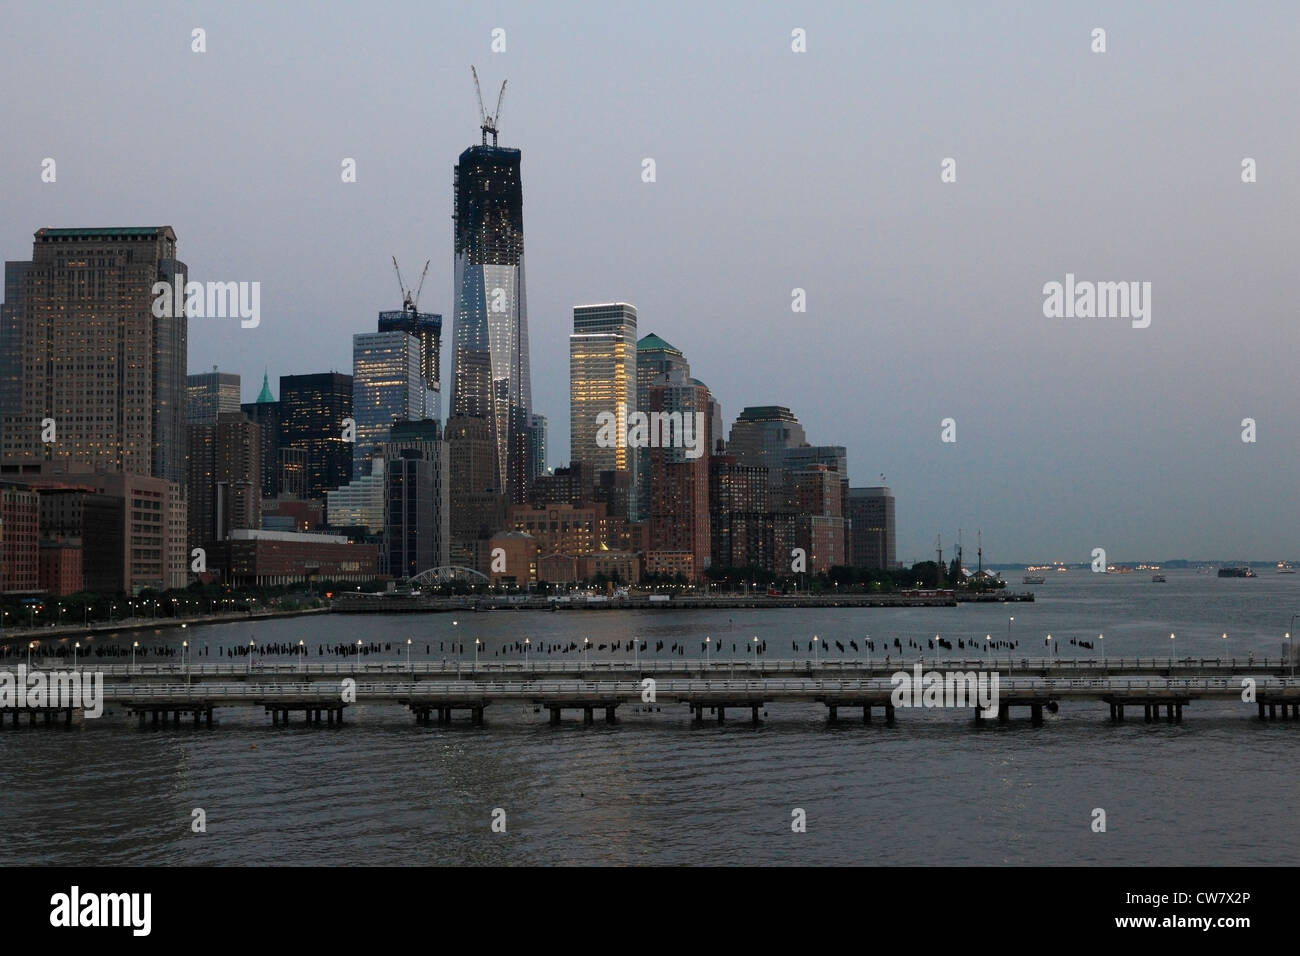 World Trade Center construction in downtown Manhattan - Stock Image